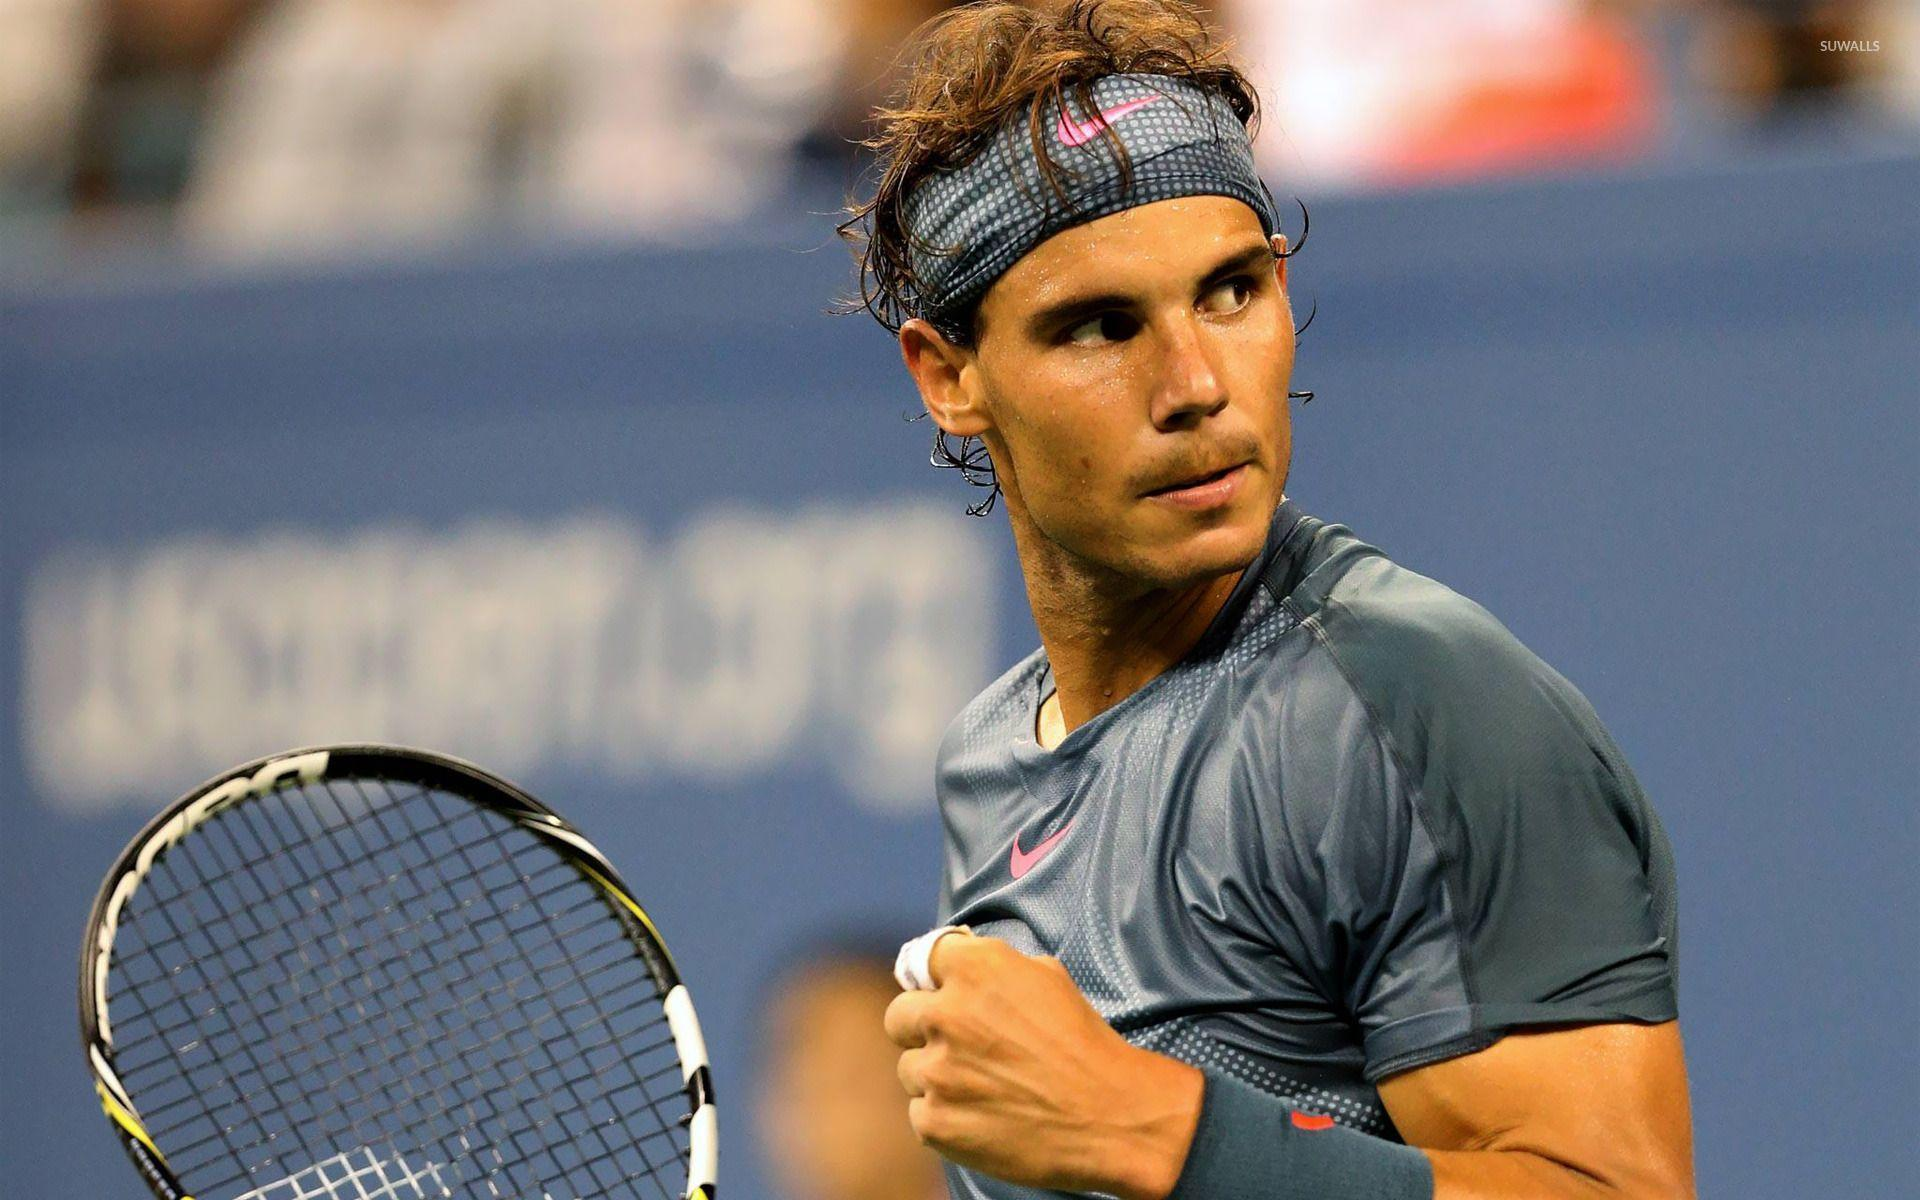 Rafael Nadal [2] wallpapers